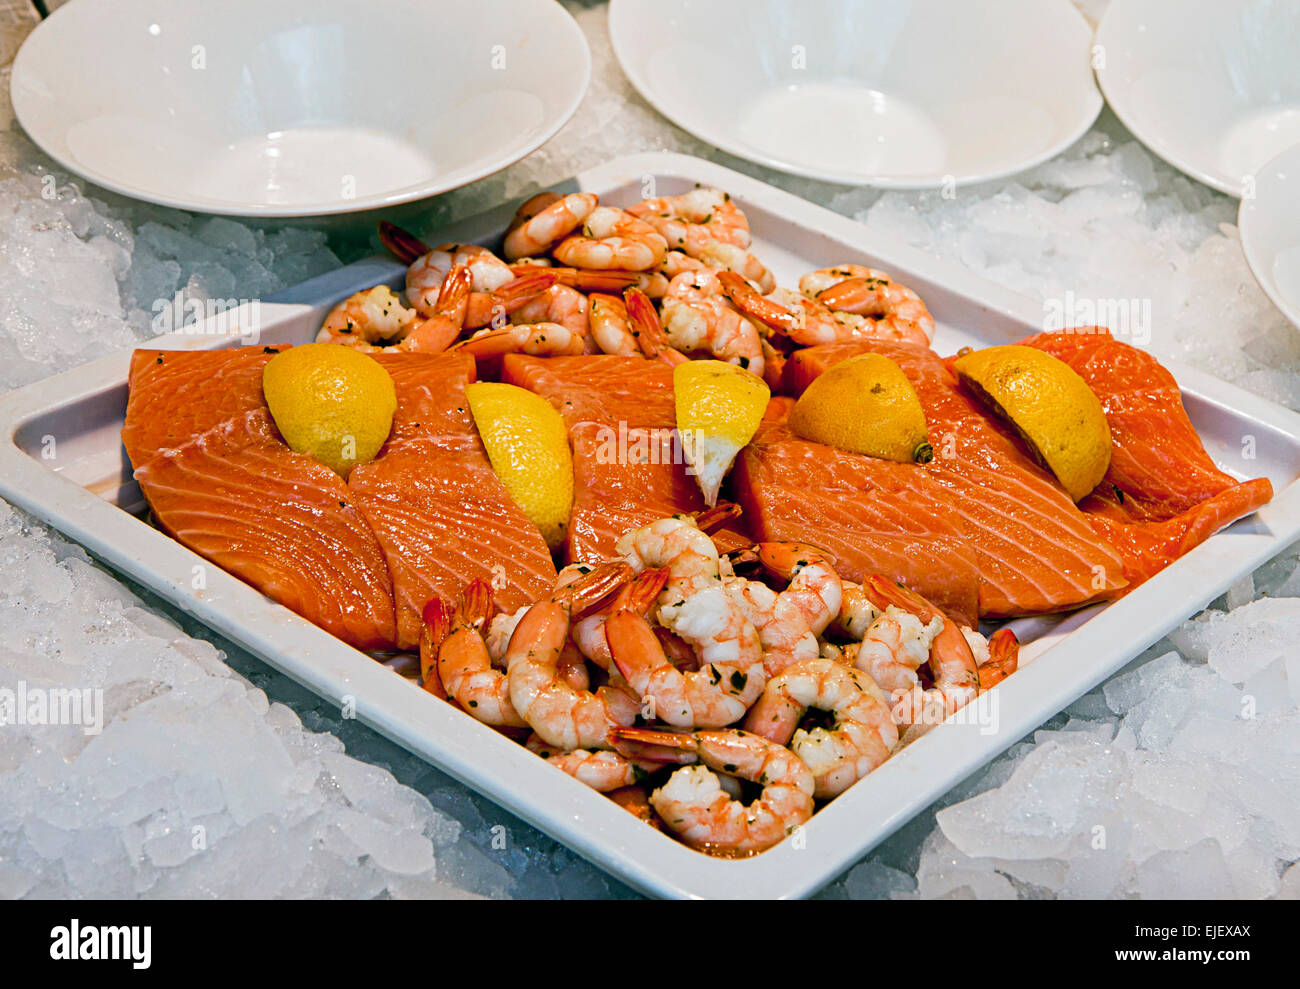 Big Tray With Raw Smoked Salmon Slices Cut And Peeled Shrimps And Stock Photo Alamy